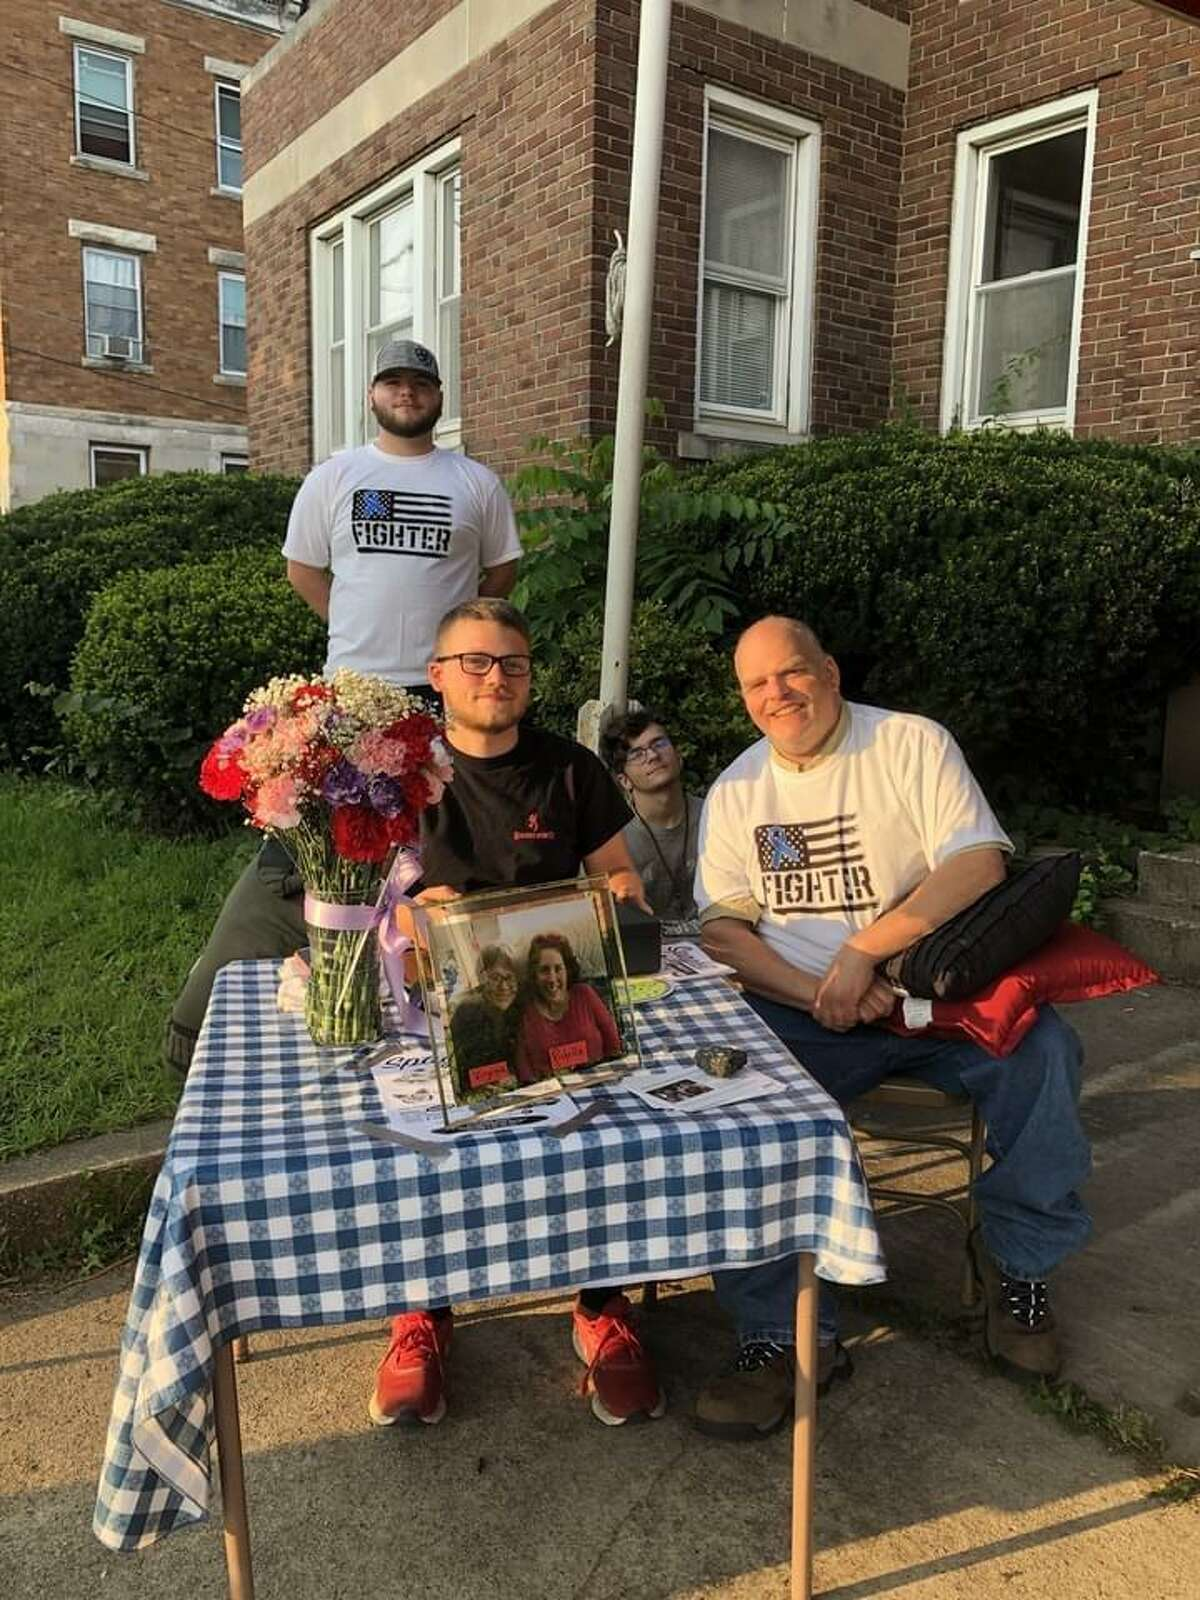 A fundraiser to buy a new van for Richelle Roman Lovato of Torrington, who has ALS, was held July 30 at the Eagle Club. Volunteers collect money at the door of the Eagles Club for the spaghetti dinner.